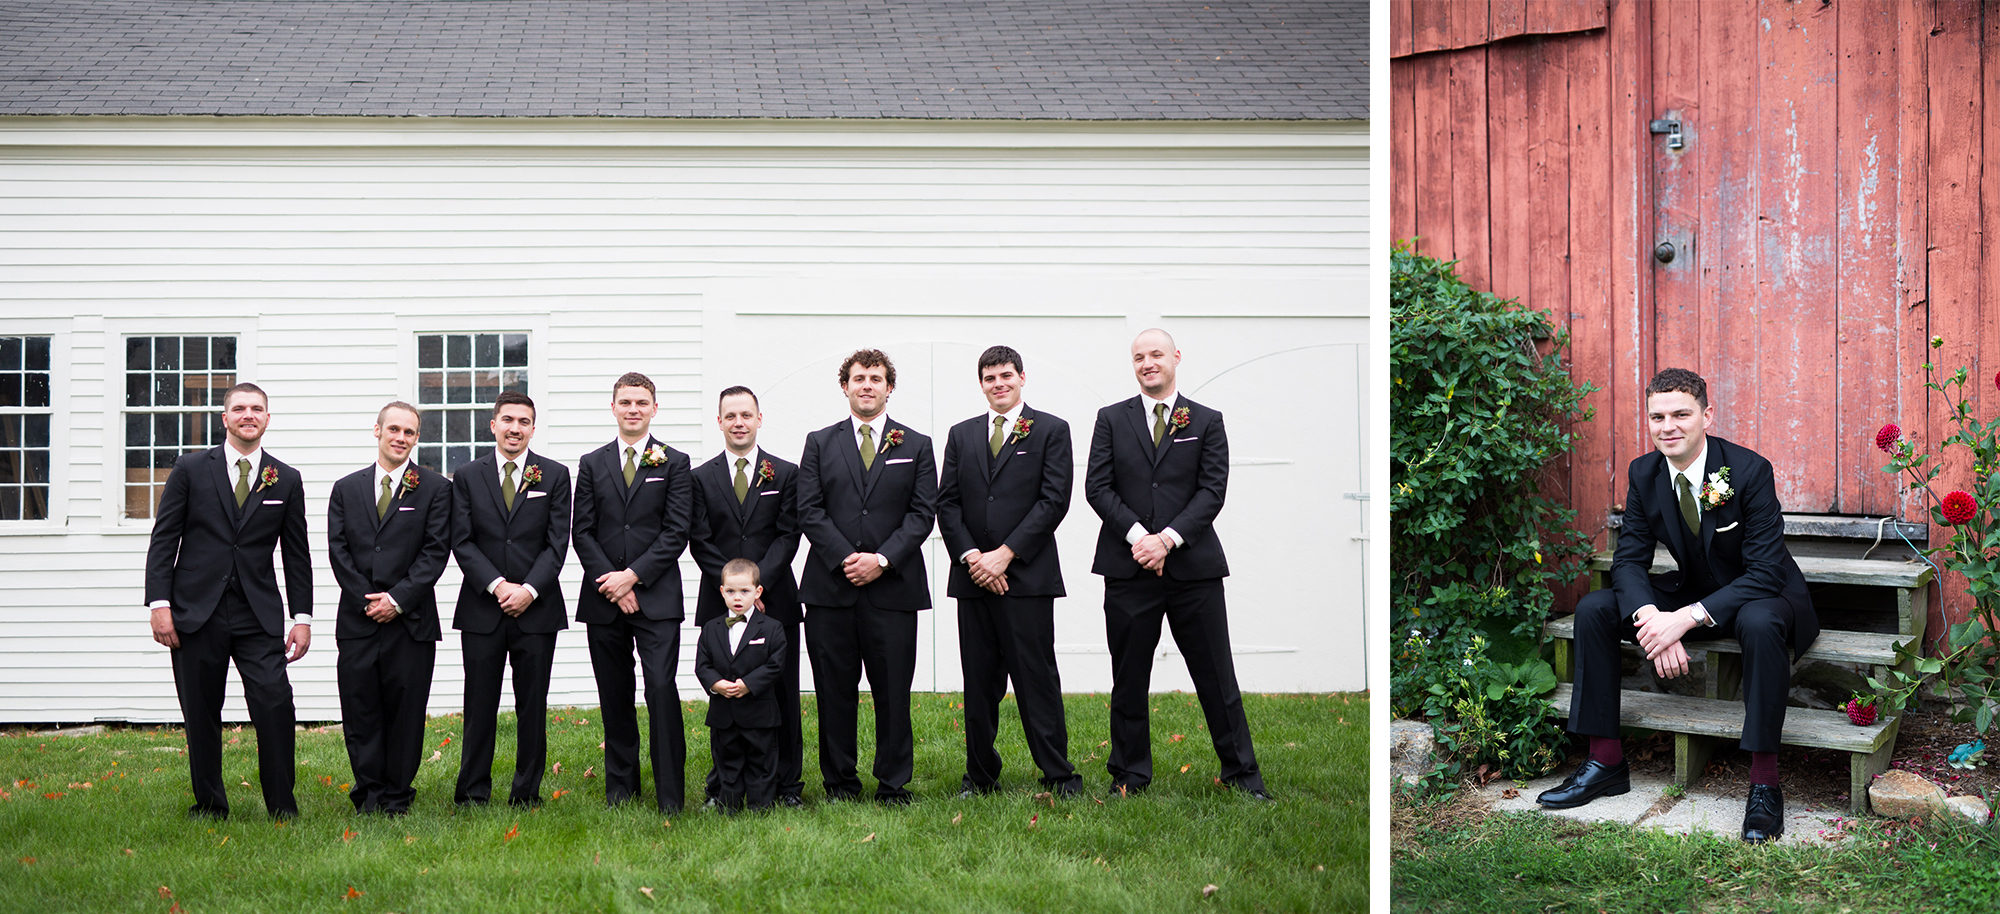 Groomsmen Groom Wedding Massachusetts Zsuzsi Pal Photography Destination